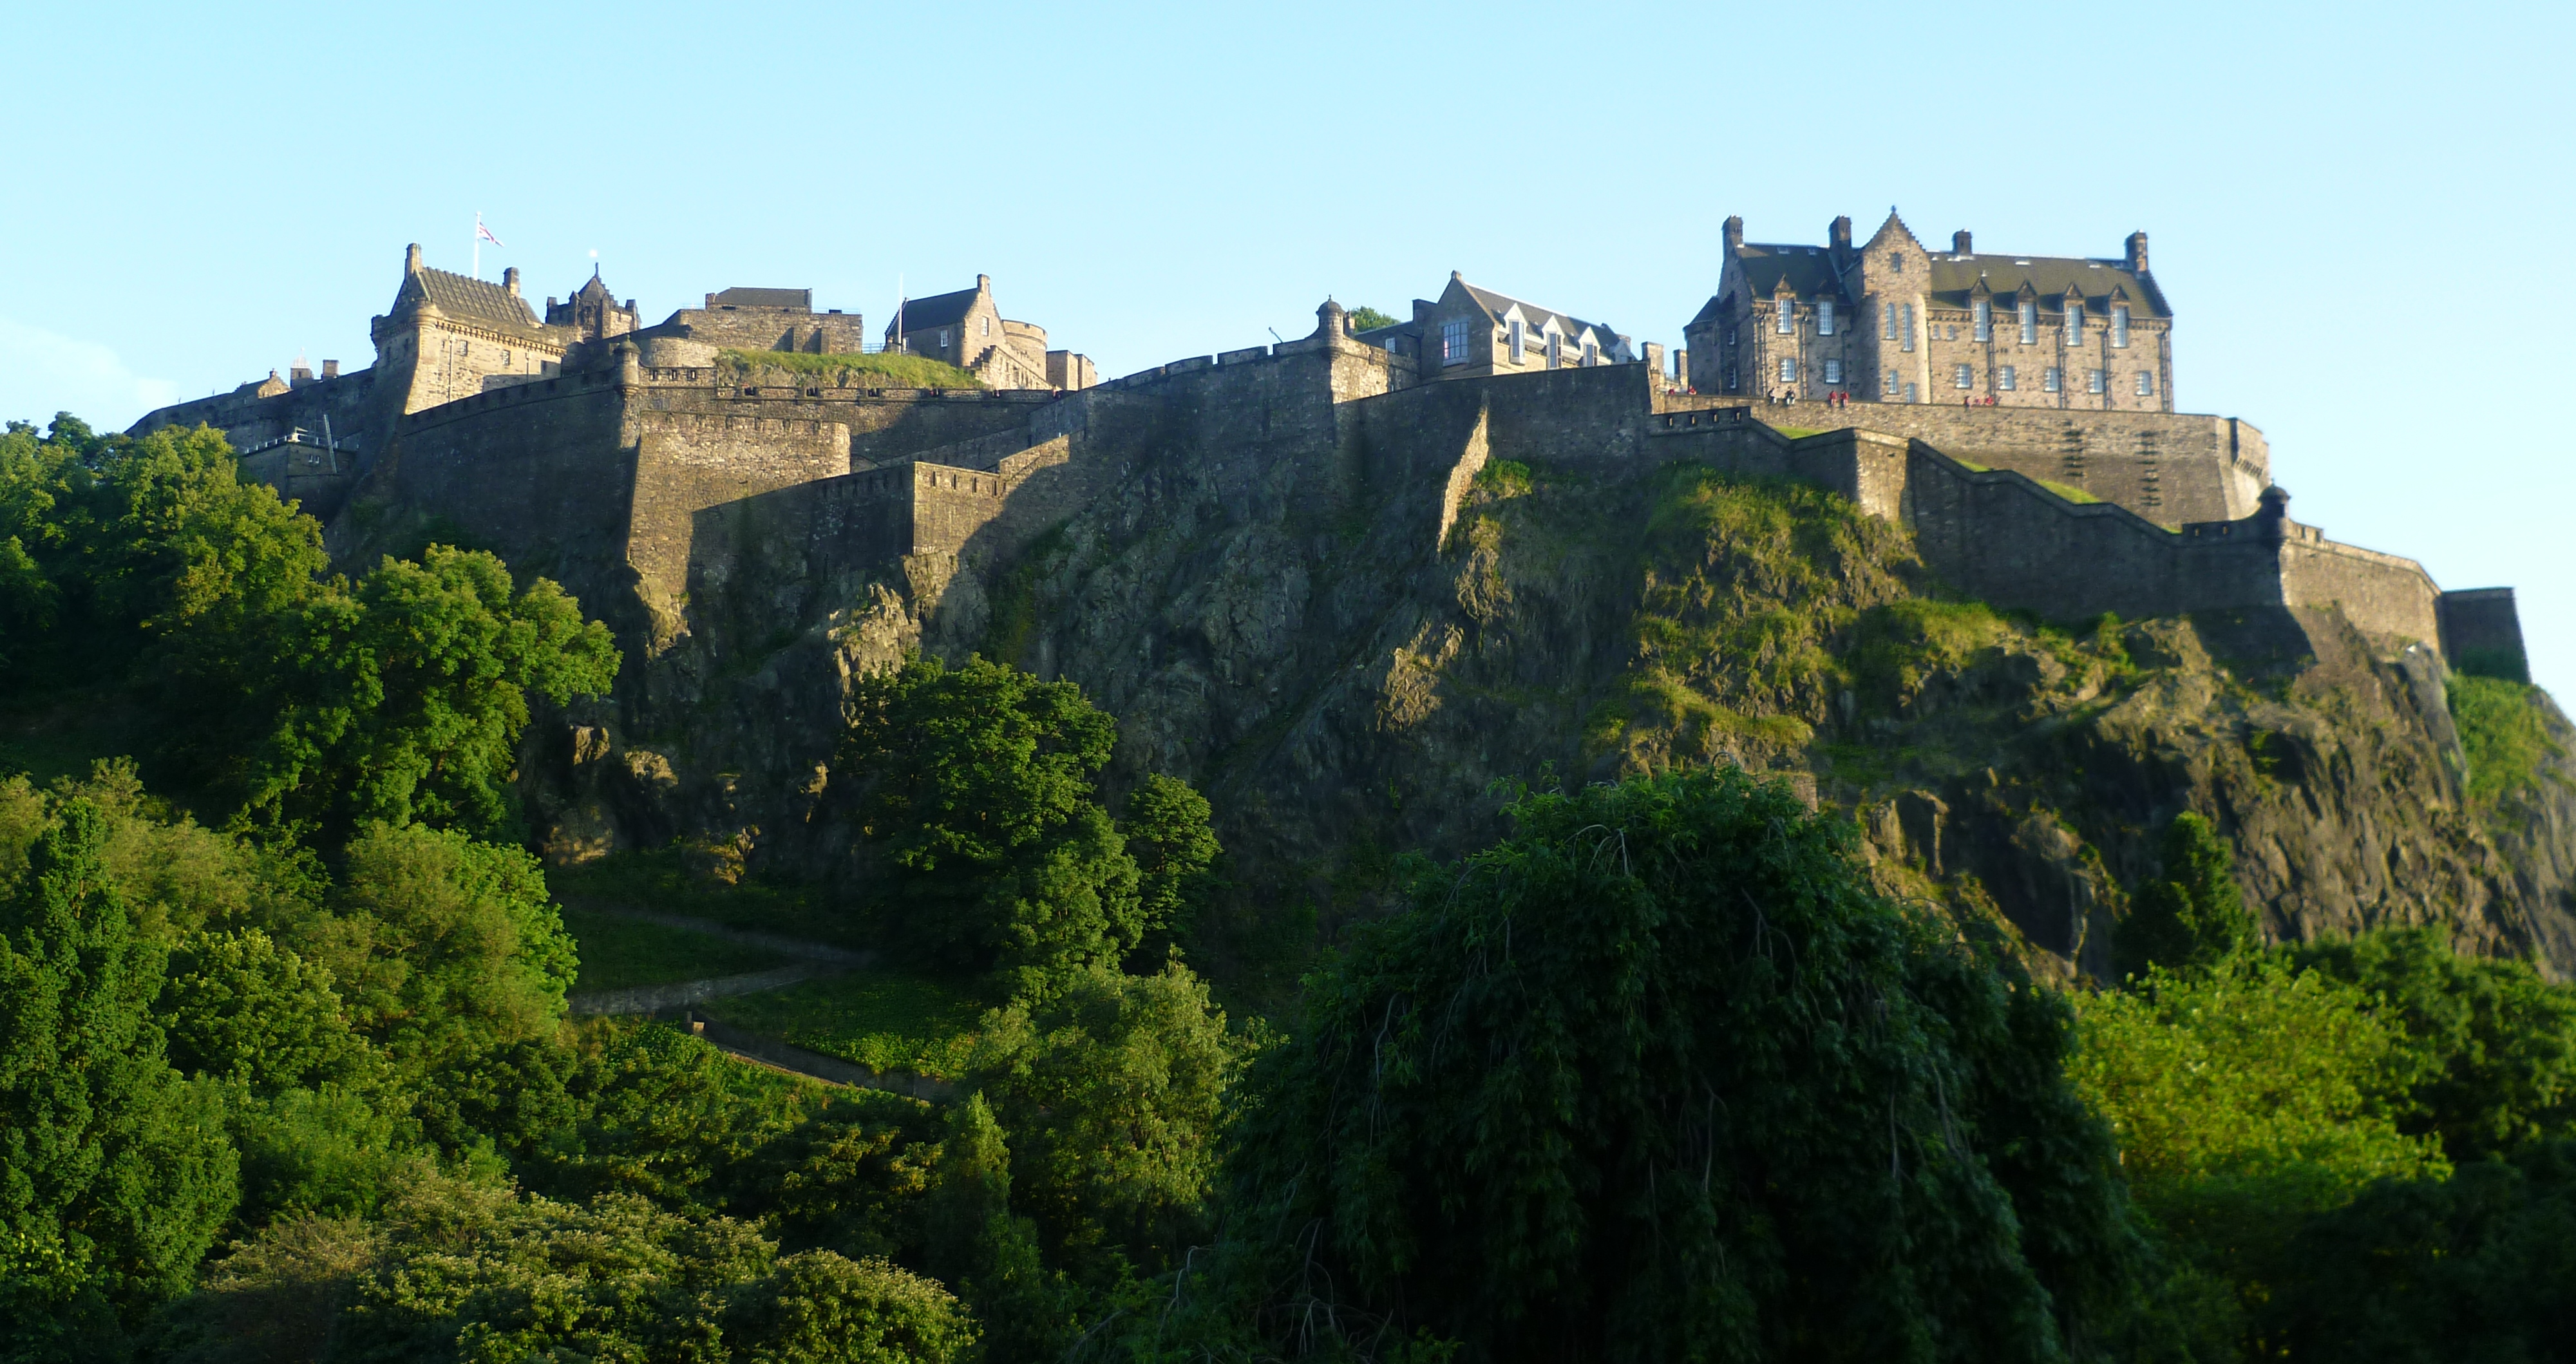 a castle on a hill with Edinburgh Castle in the background